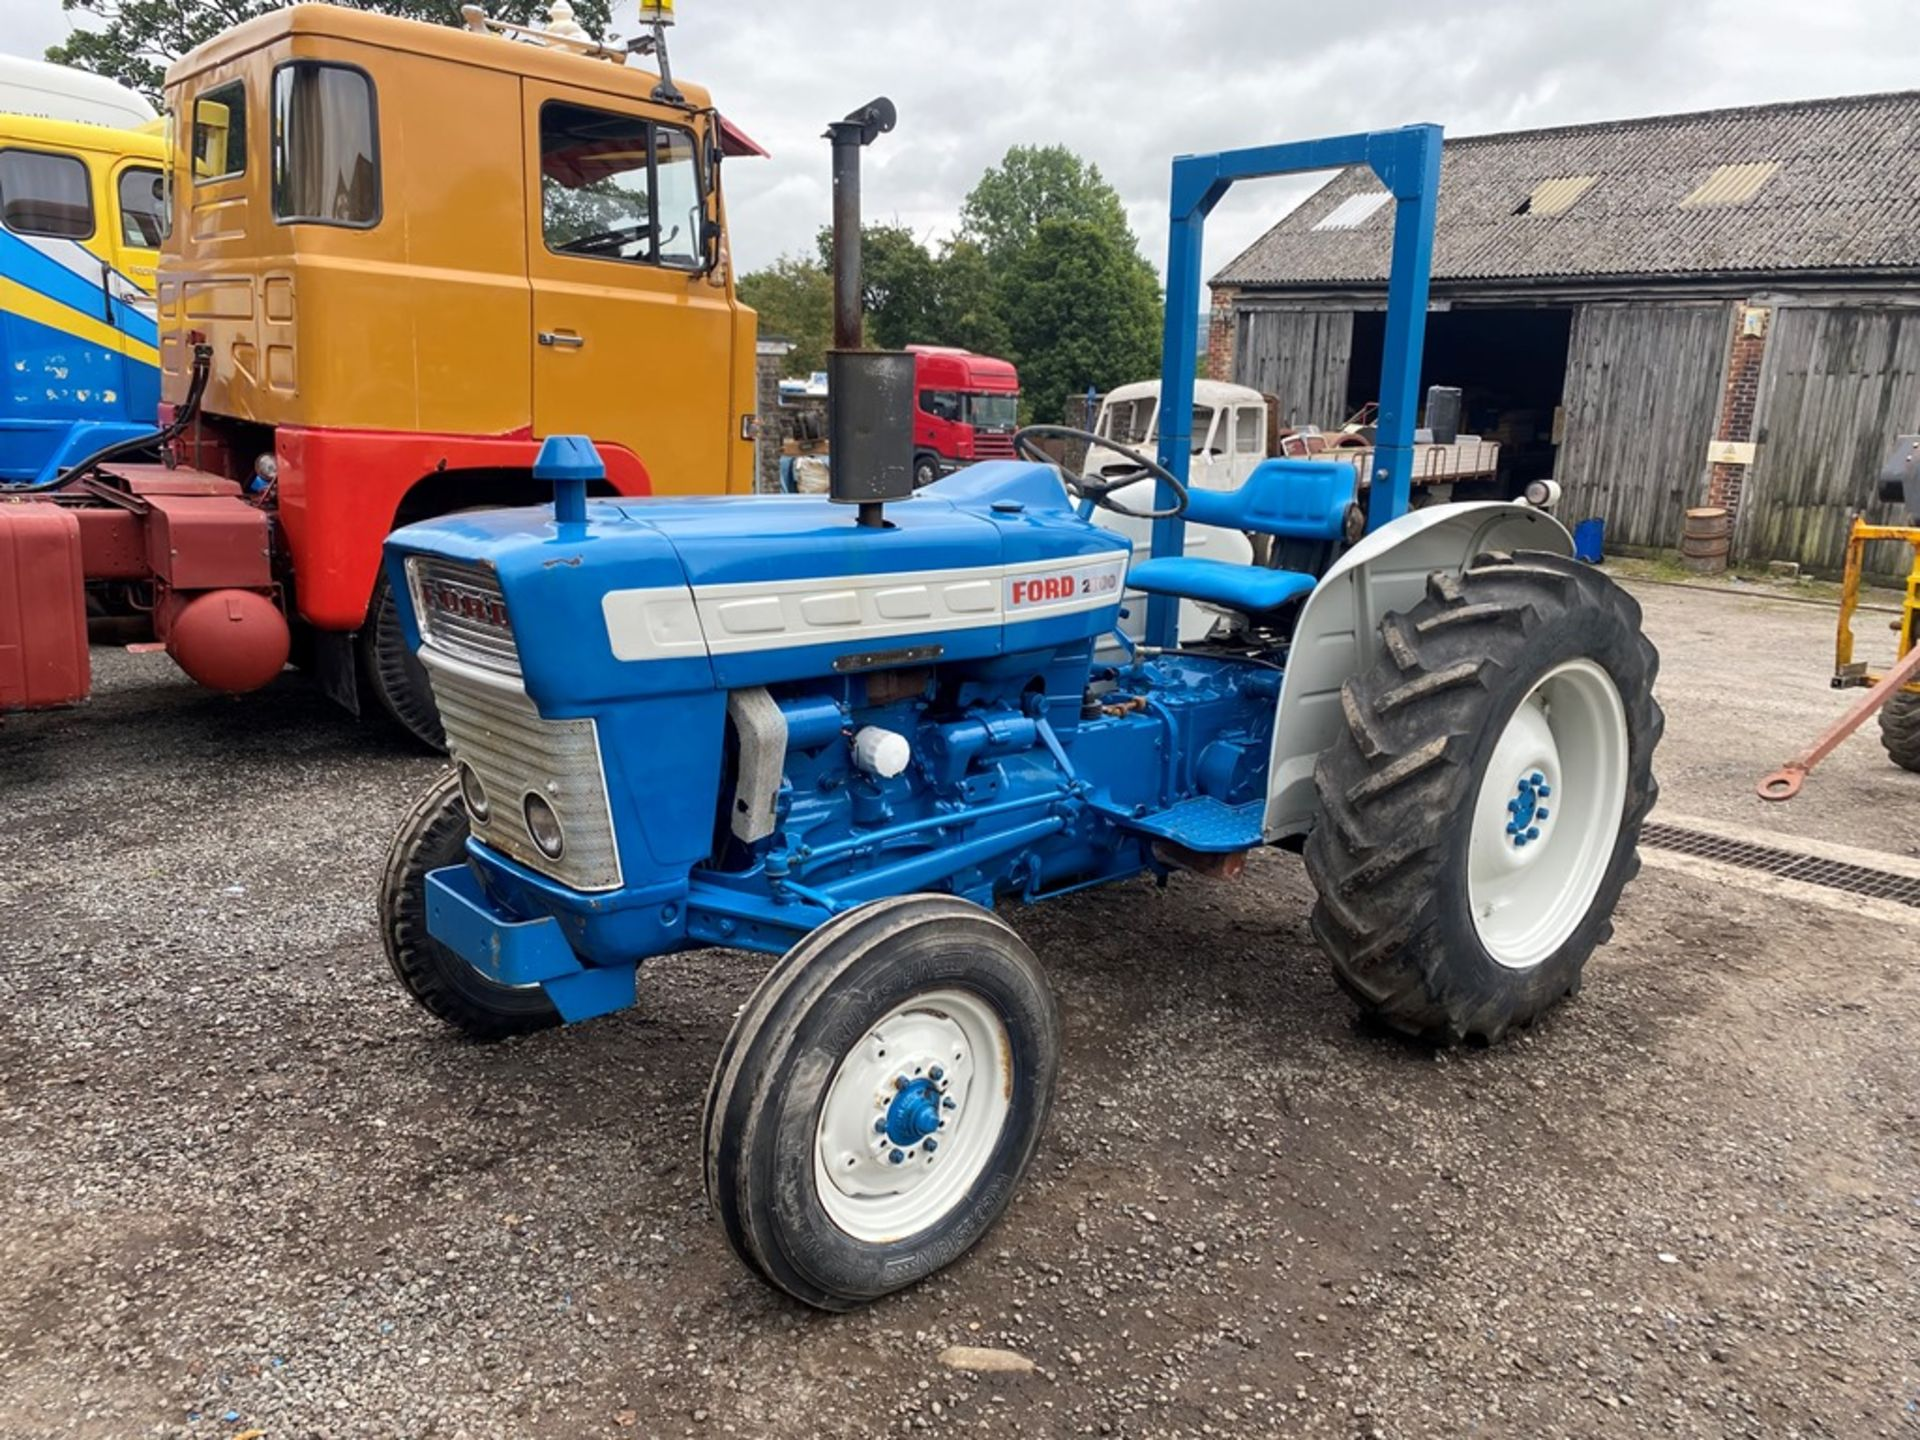 Ford 2000 Agricultural Tractor, vendors comments – nice original condition, clutch is stuck on